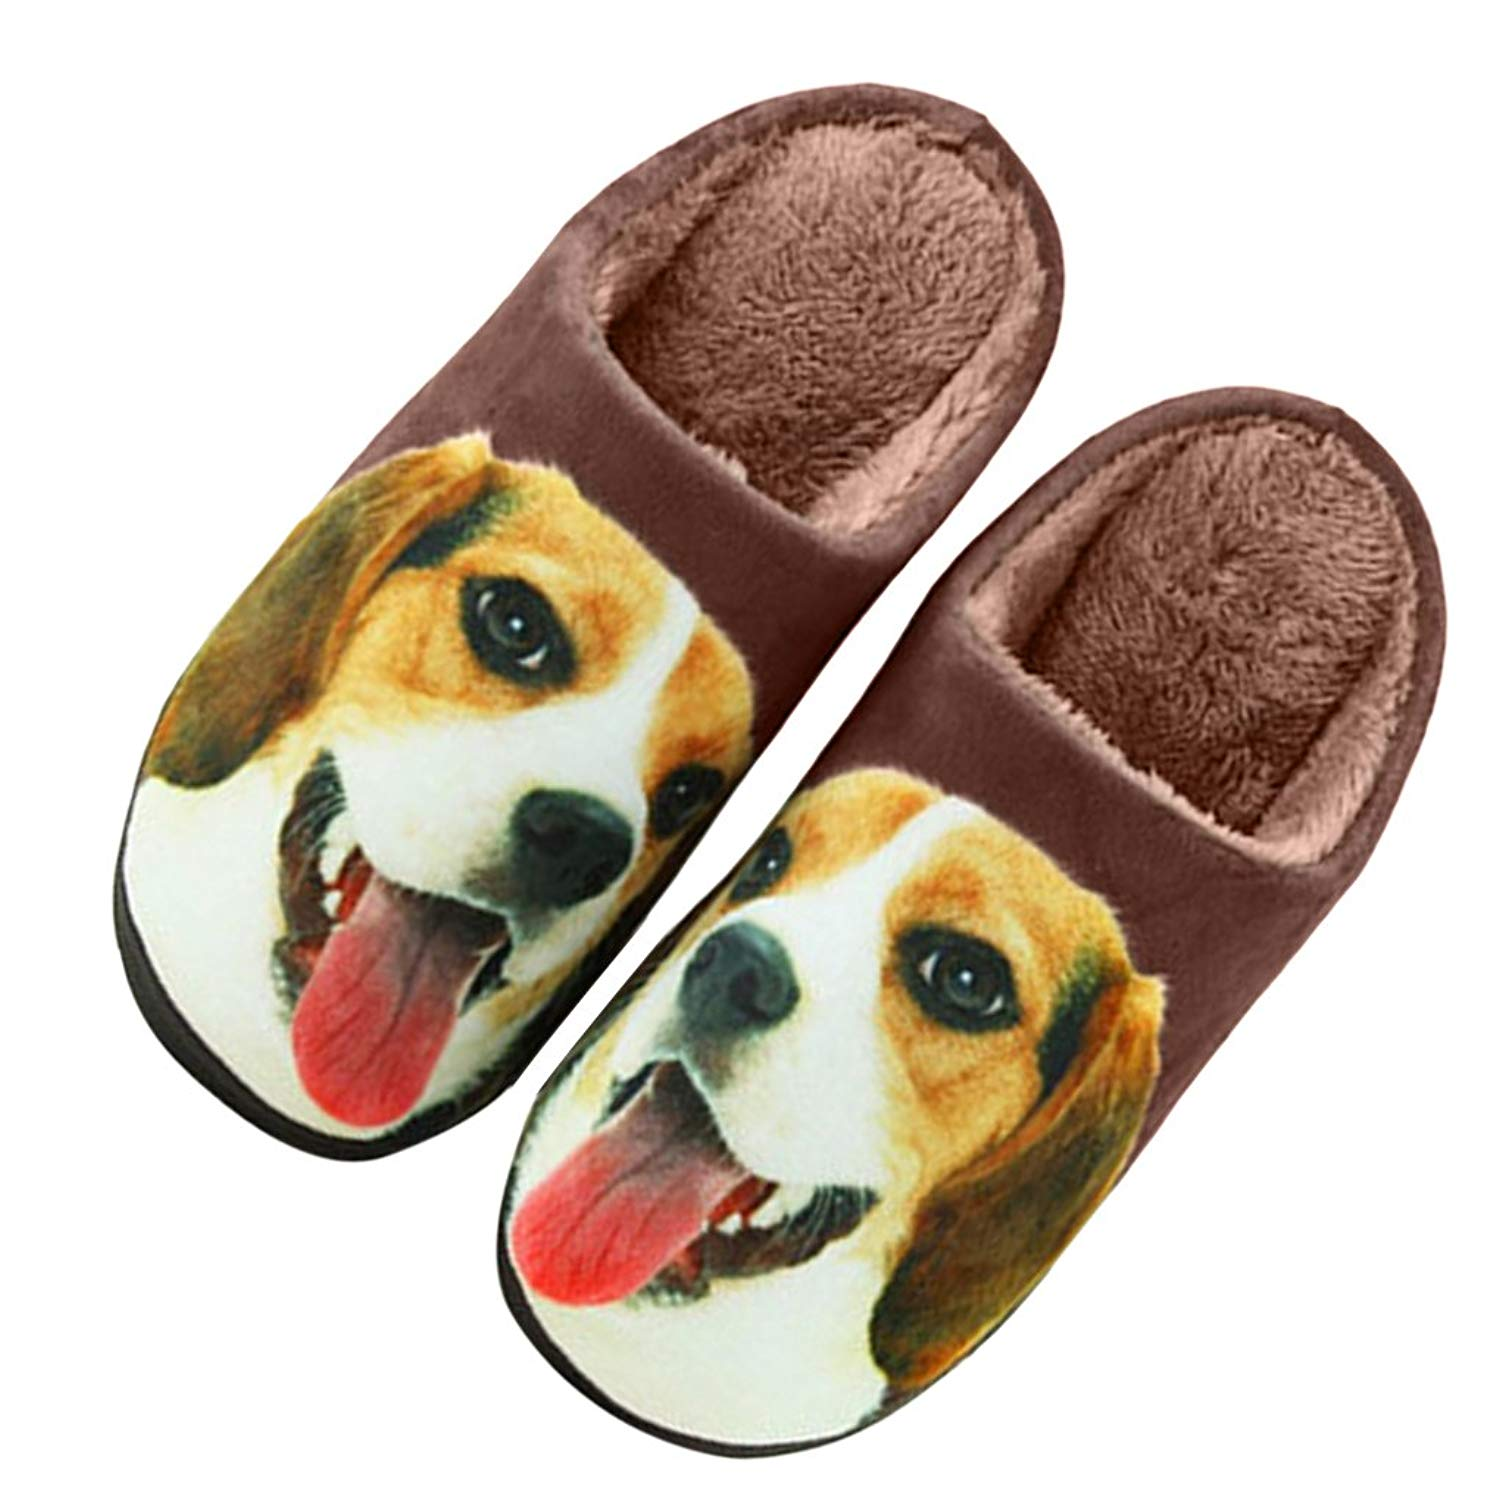 e2376ddb682 Get Quotations · JIAHG Creative Print Couples Slippers Cartoon Cute Scuff Slippers  Winter Warm Indoor Floor Shoes Cotton House